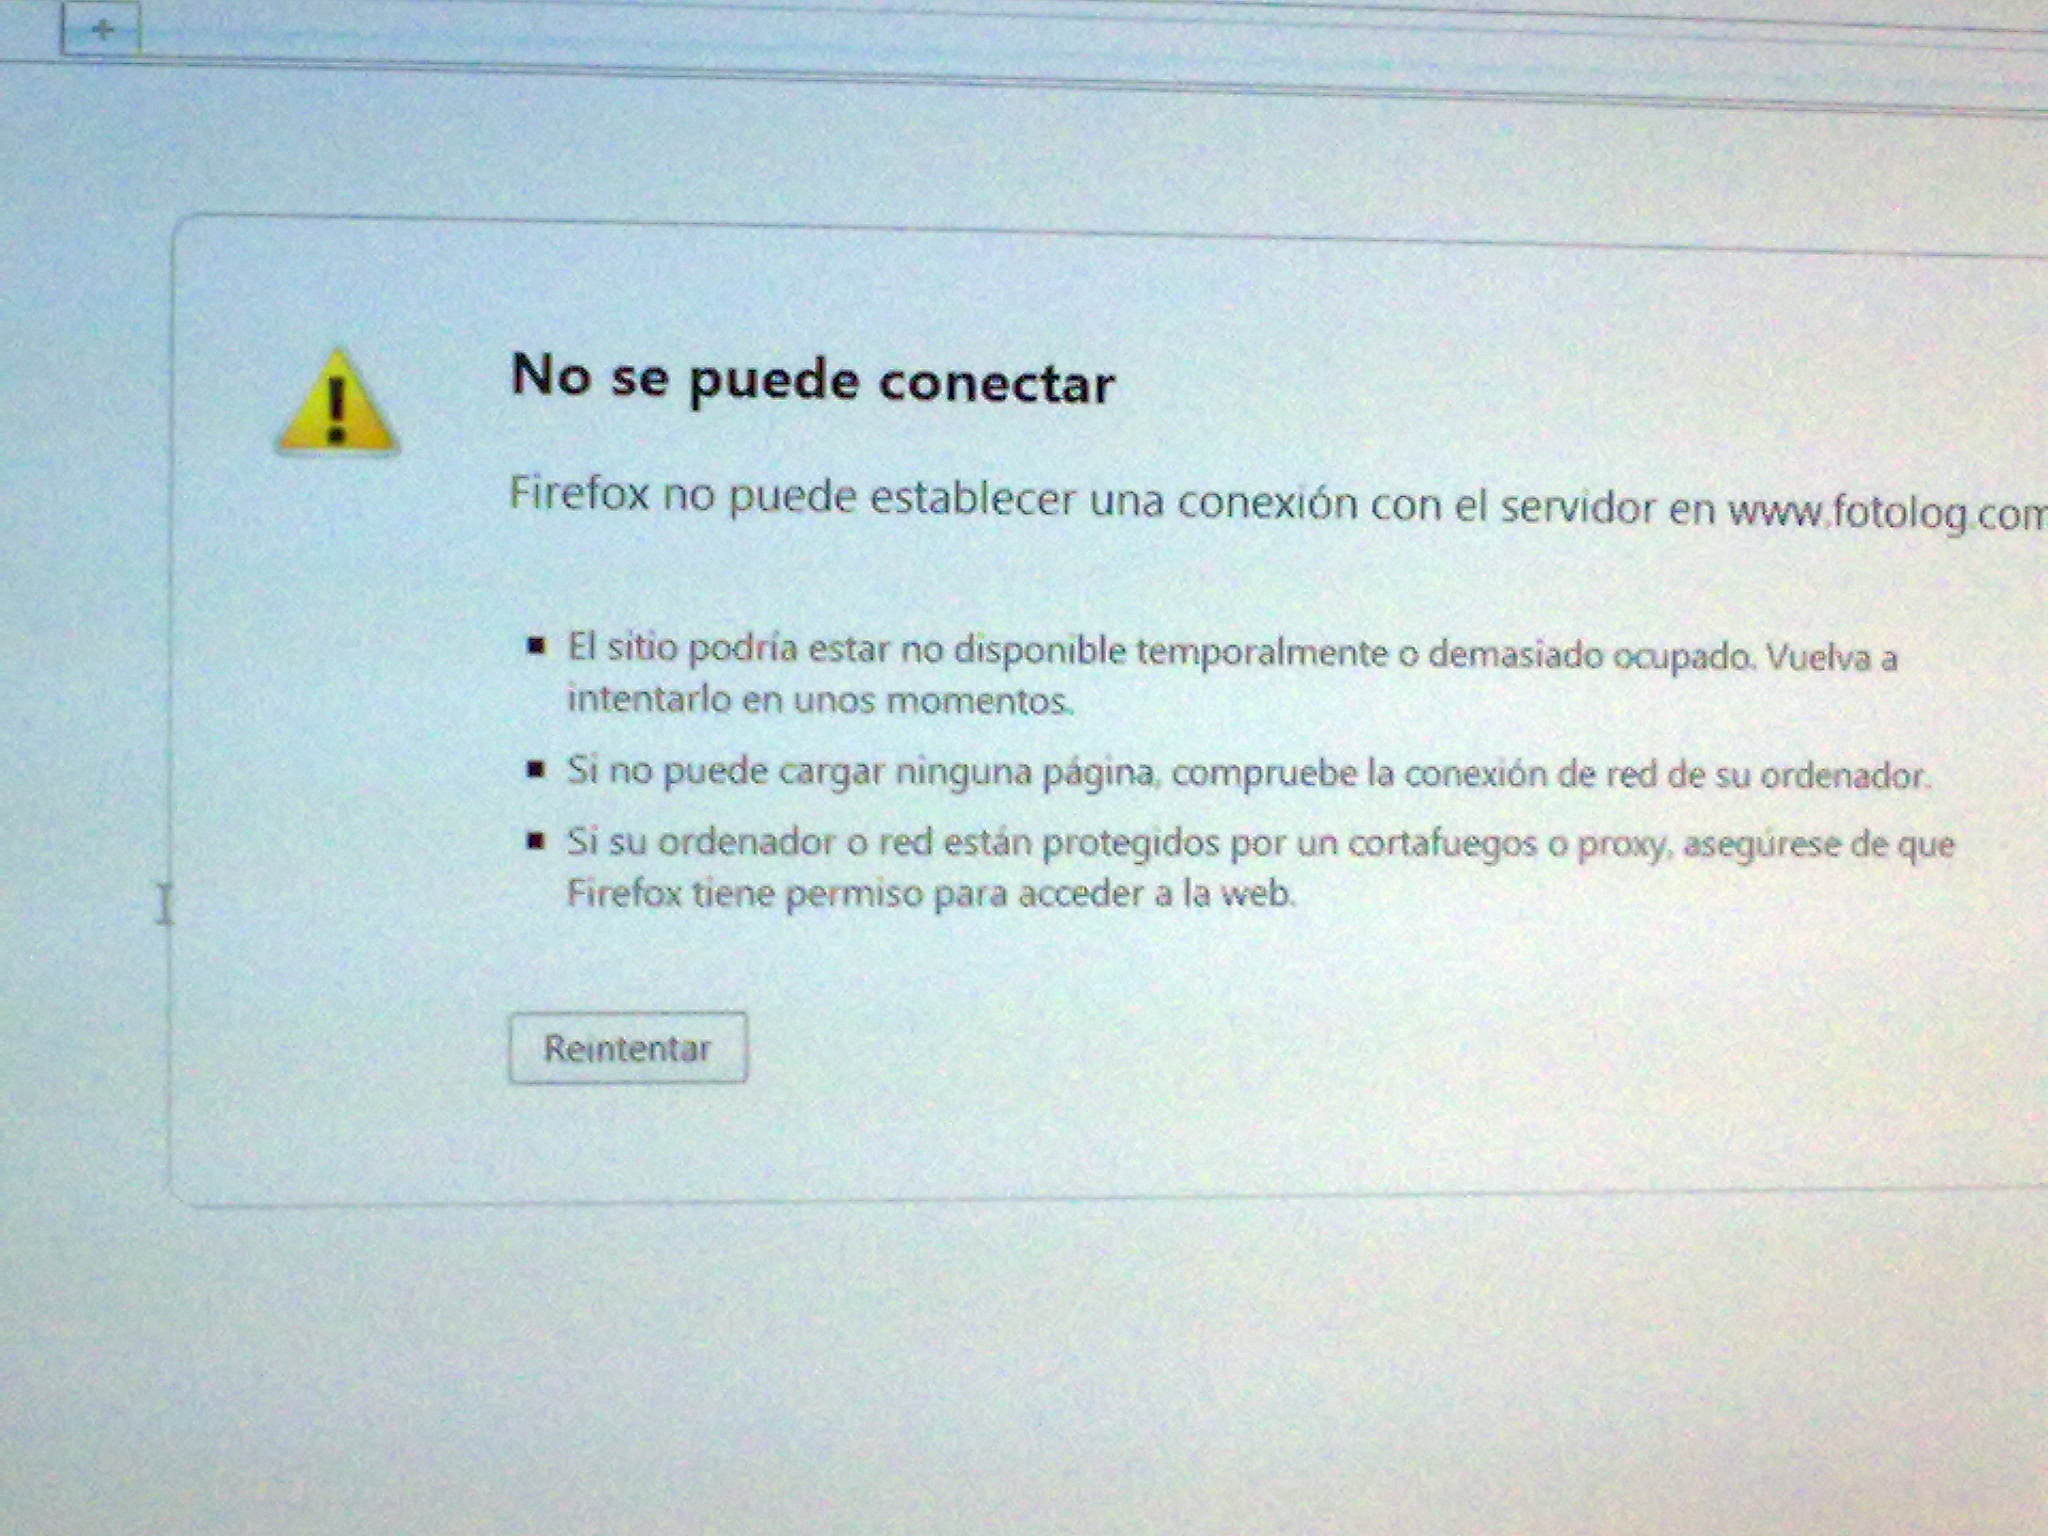 Aca les traigo como bloquear paginas con windows 7